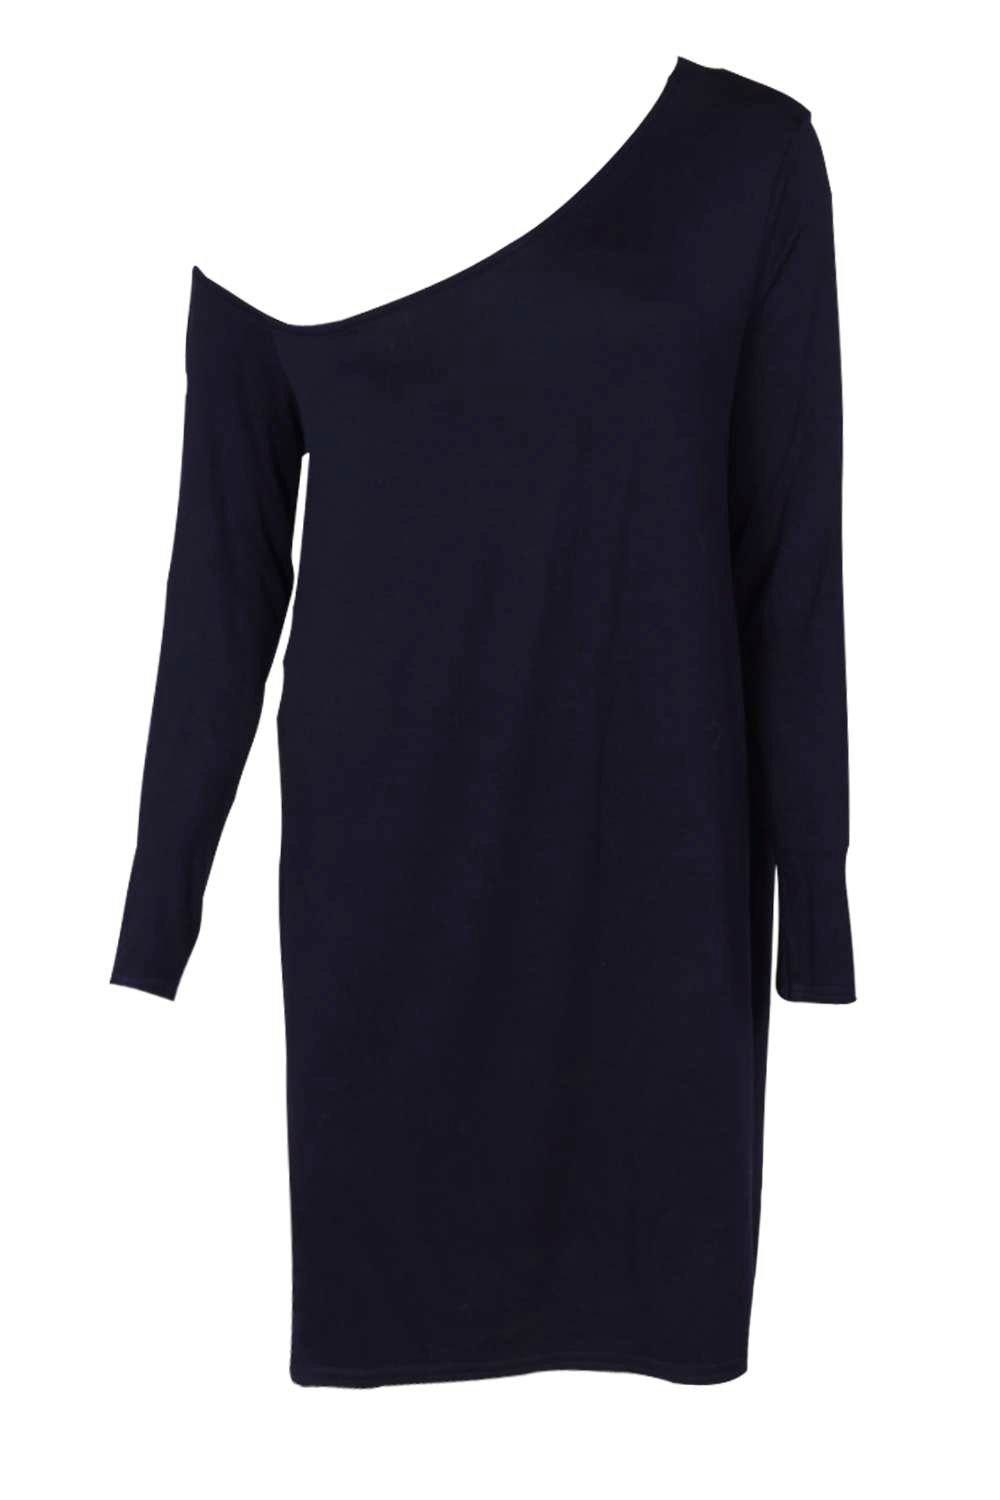 Boohoo Synthetic Rita Slash Neck Long Sleeve Slouch Dress in Navy (Blue)